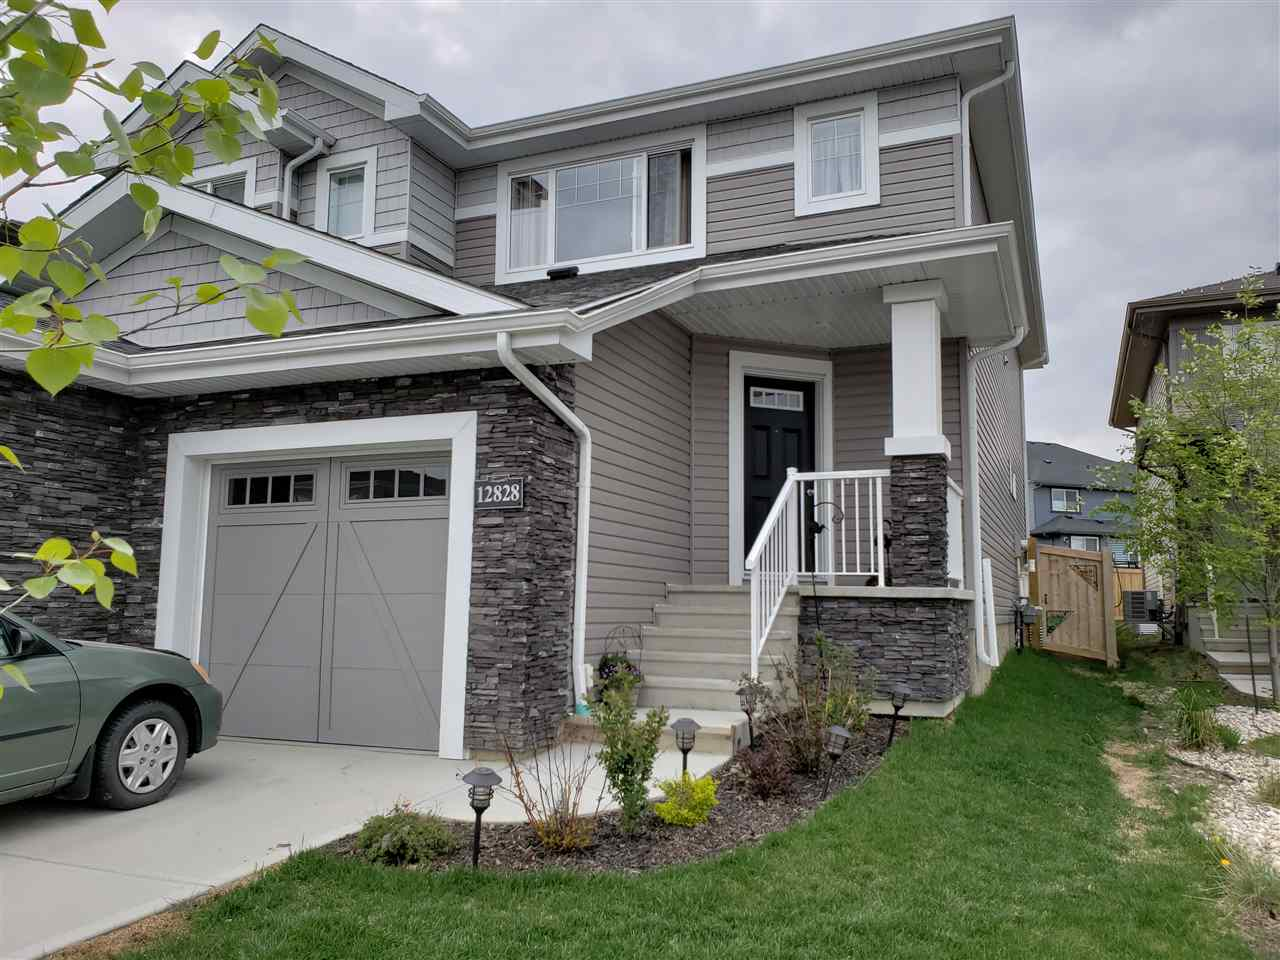 MLS® listing #E4146096 for sale located at 12828 205 Street